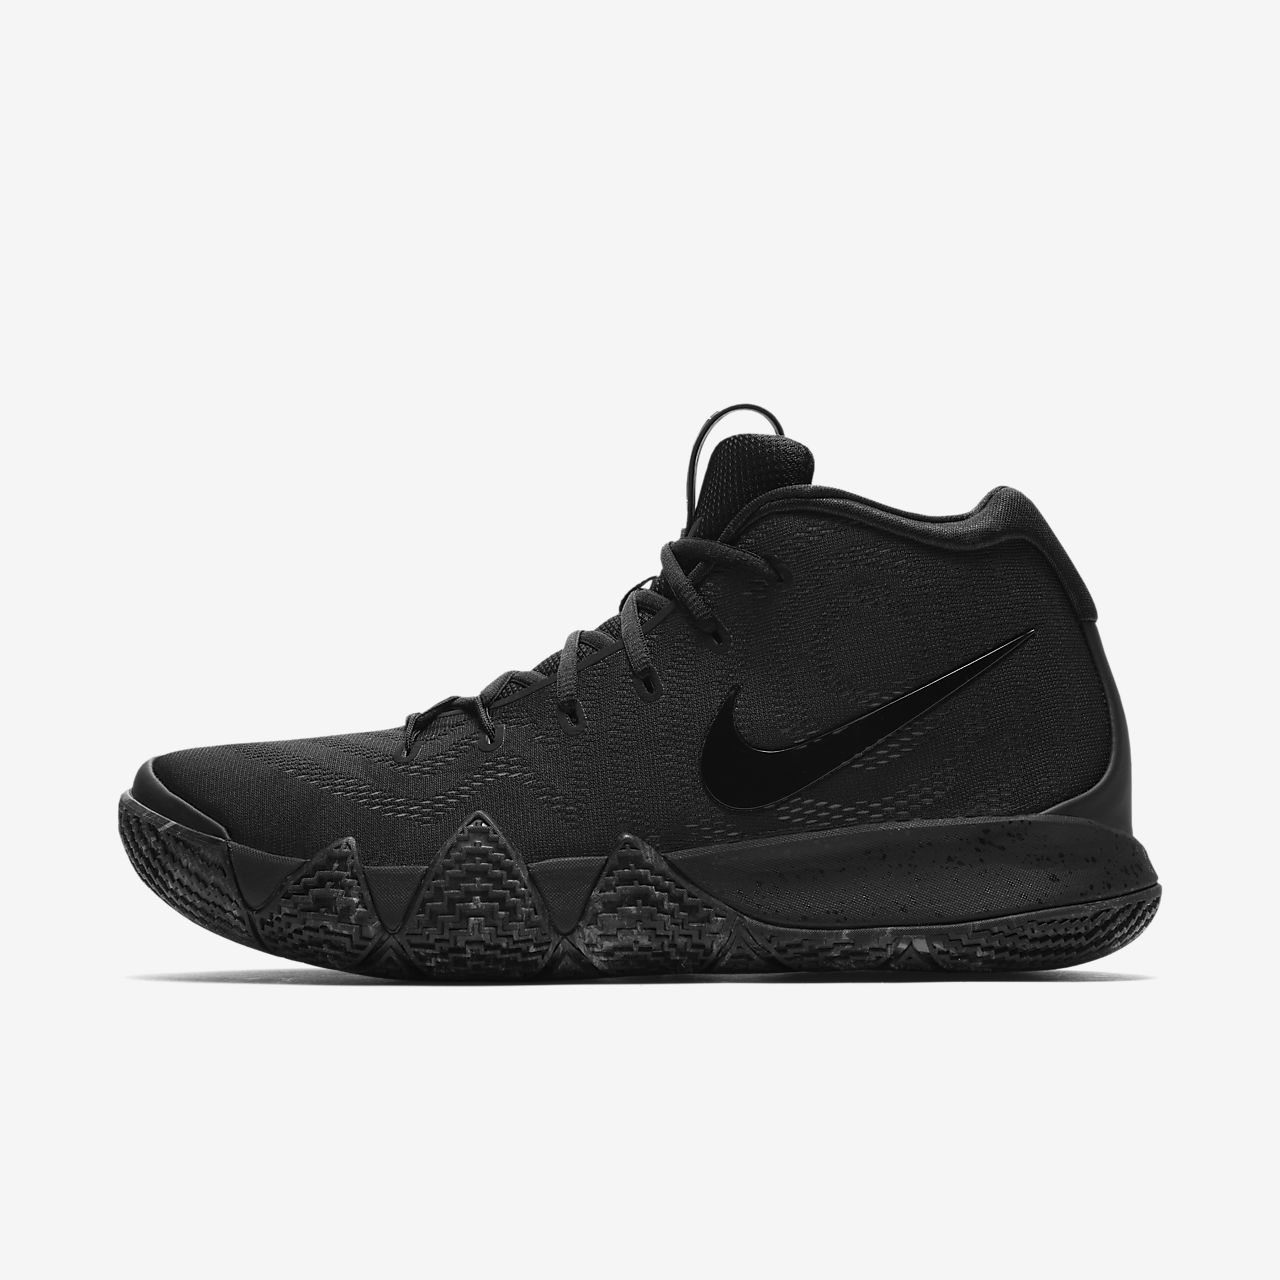 watch 75a9a 67c00 Kyrie 4 Basketball Shoe. Nike.com CA